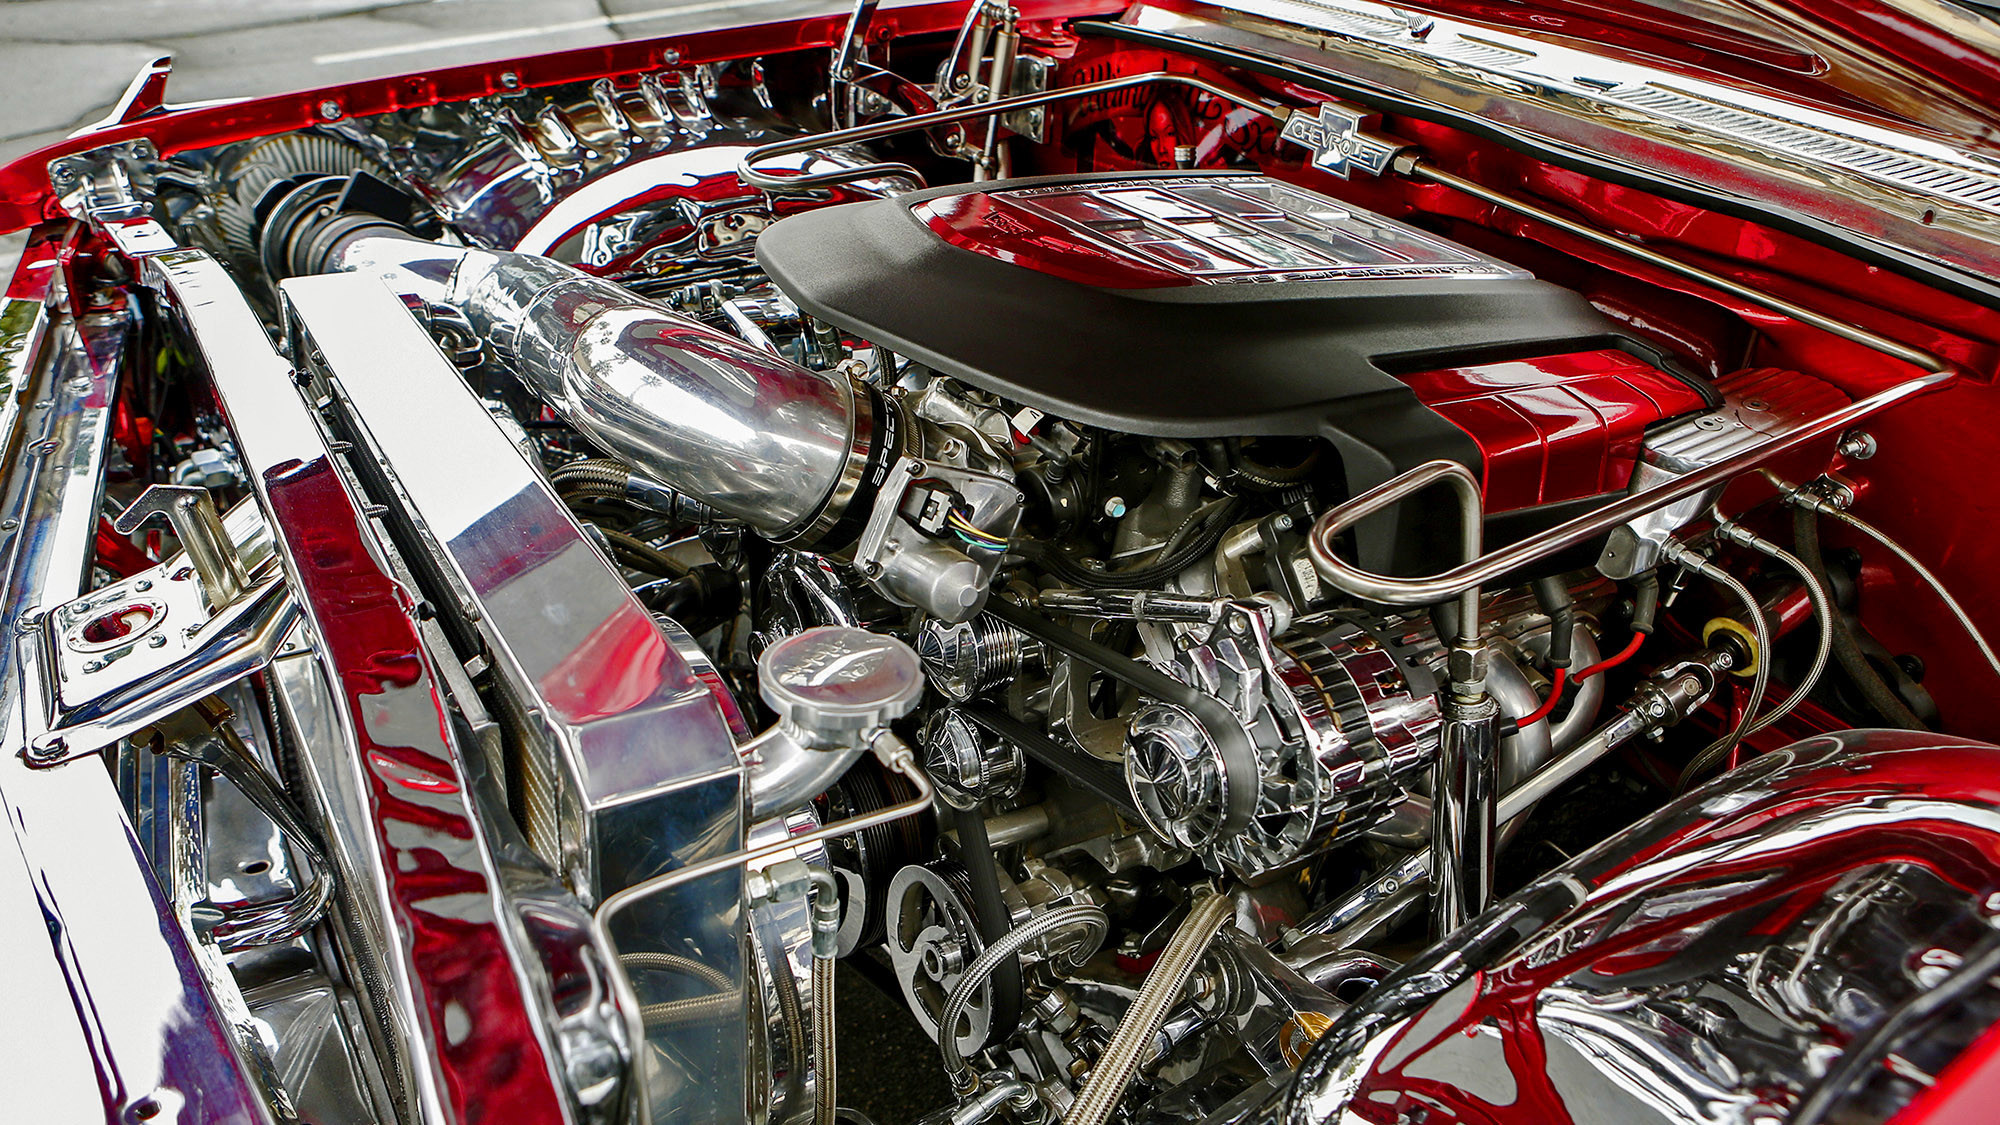 A look under the hood of Vernon Maxwell's 1961 Chevy Impala lowrider reveals a supercharged engine.